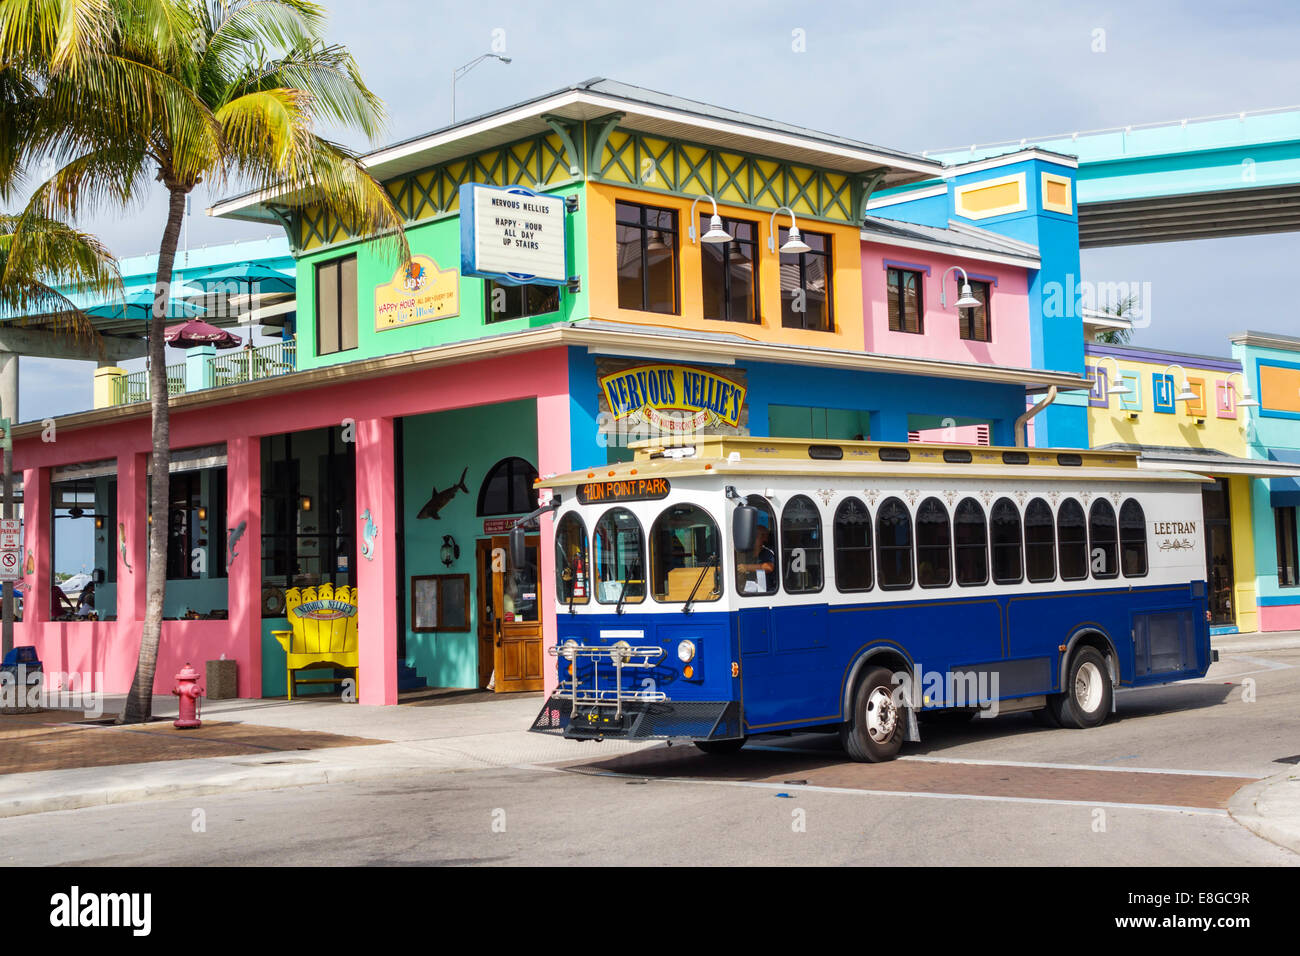 Fort Myers Florida Ft Beach Leetran Lee Tran Public Bus Service Coach Trolley Nervous Nellies Restaurant Outside Exterior